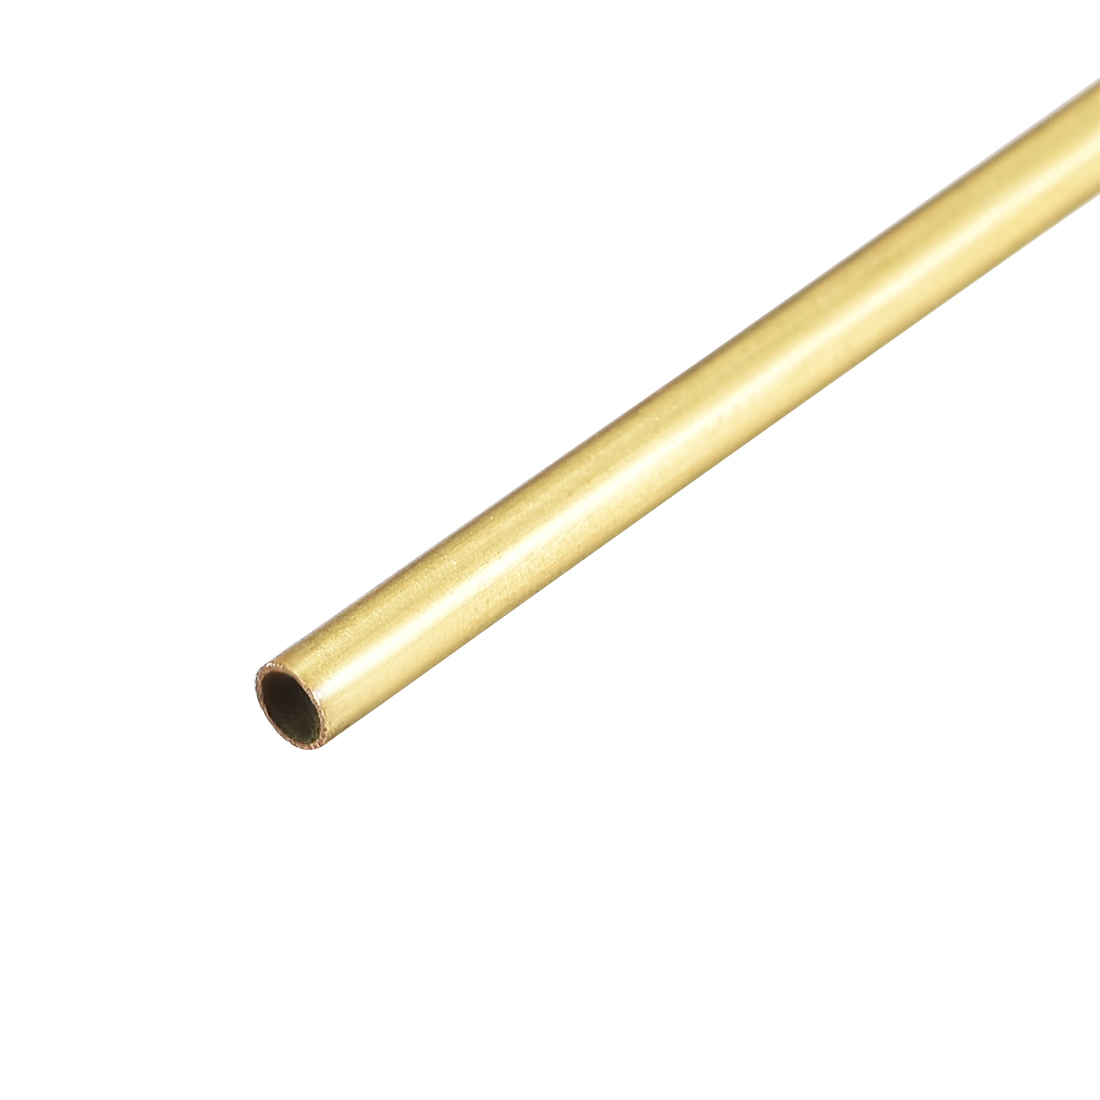 Uxcell Brass Round Tube 300mm Length 2mm OD 0.2mm Wall Thickness Seamless Straight Pipe Tubing